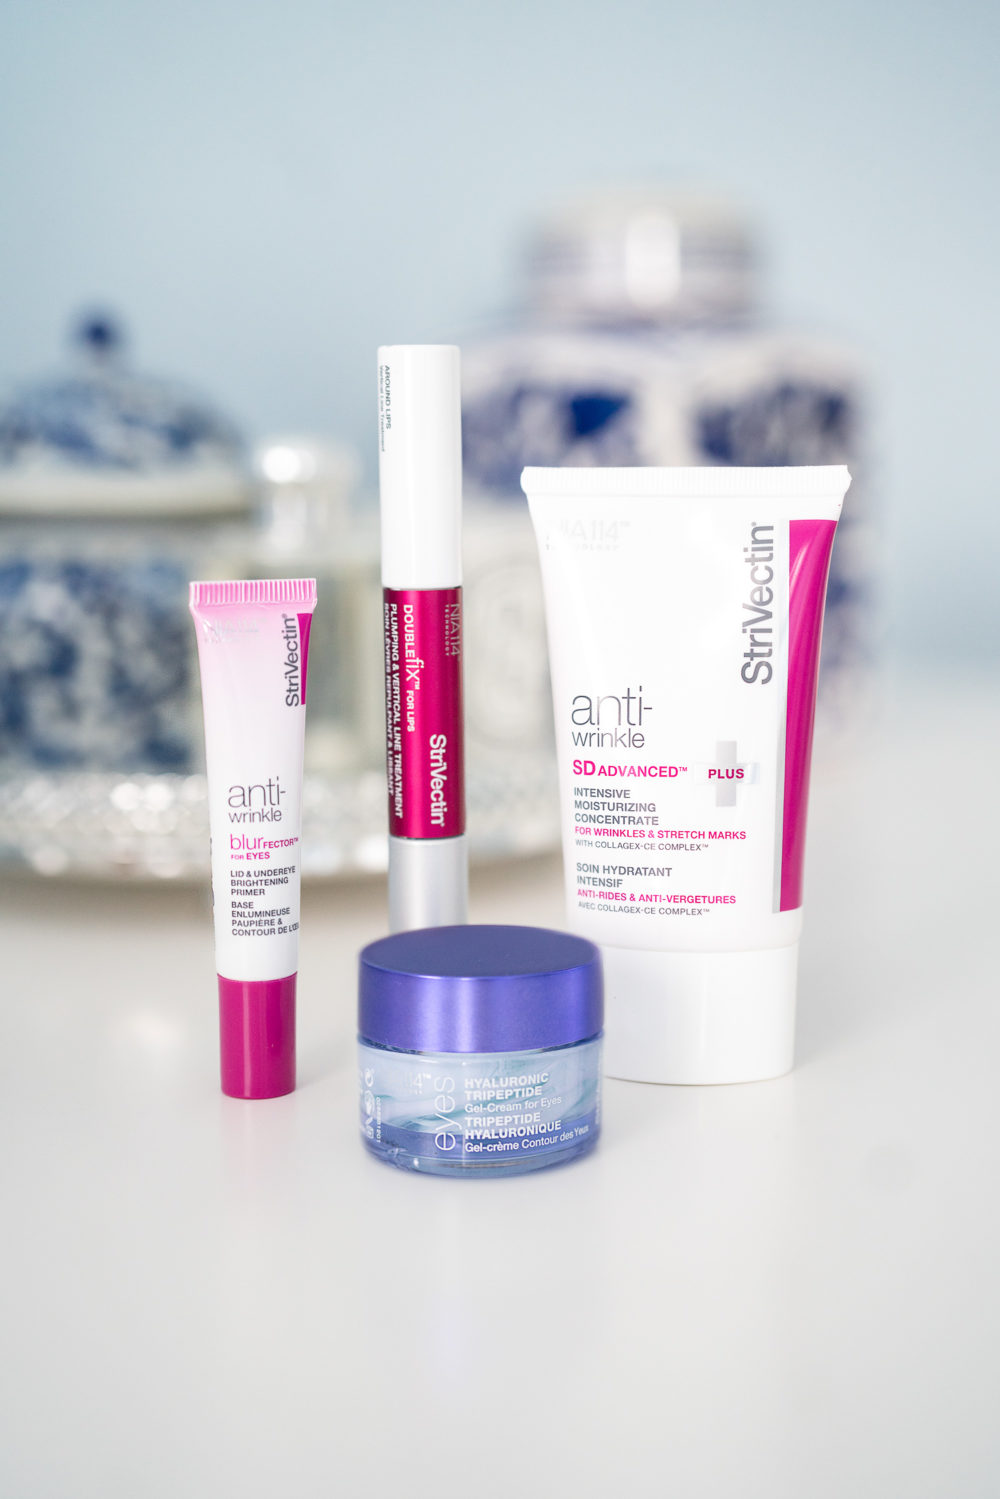 Petite Fashion Blog | Strivectin Anti Wrinkle Cream Before and After | Strivectin Anti-Wrinkle Cream Review